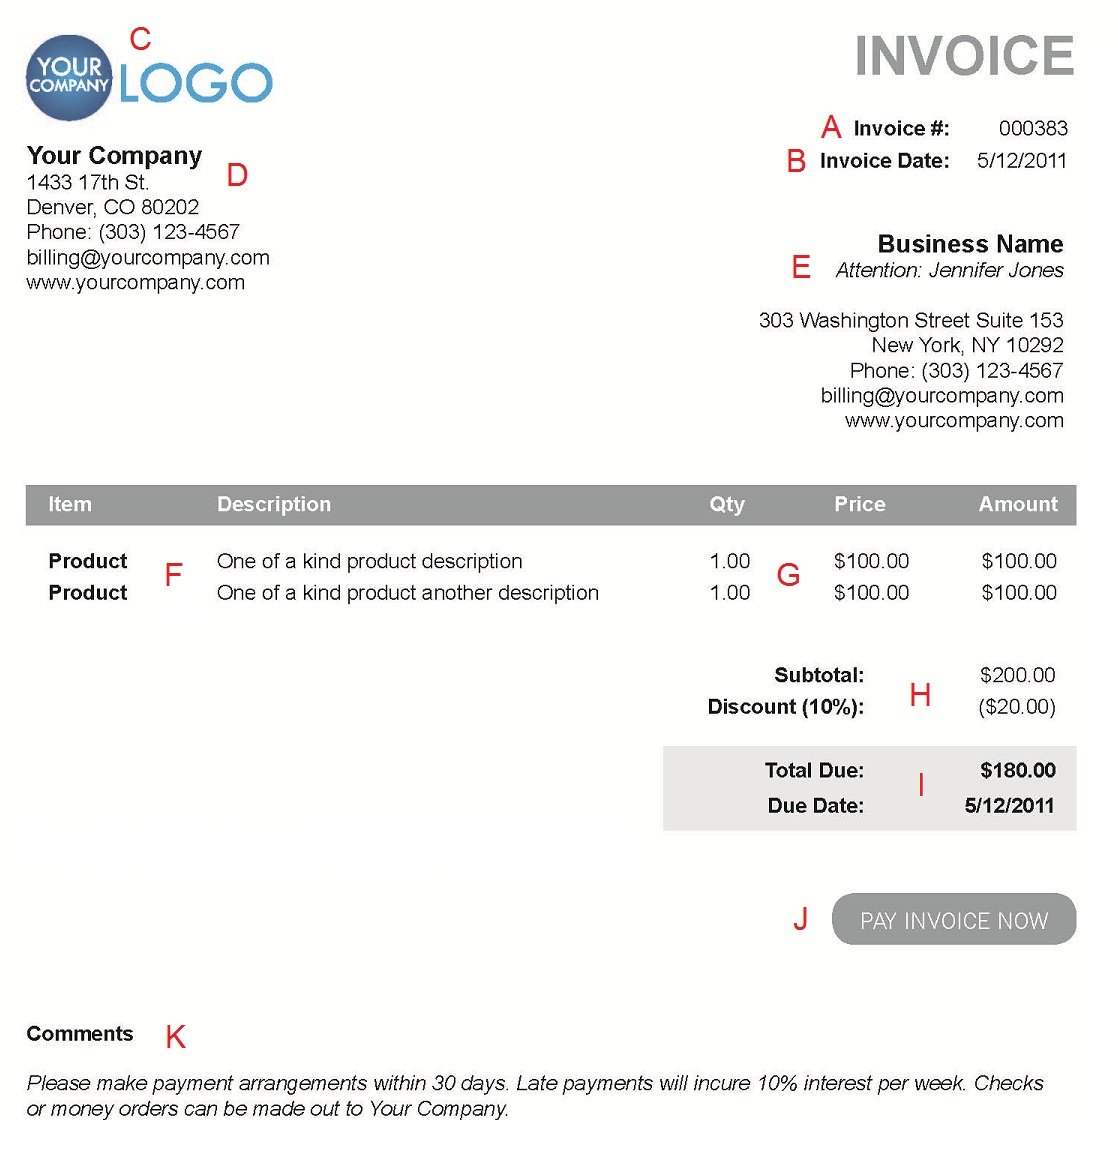 Bringjacobolivierhomeus  Winning The  Different Sections Of An Electronic Payment Invoice With Hot A  With Lovely Pdf Invoice Generator Also Landscaping Invoices In Addition Photographer Invoice Template And Invoice Example Pdf As Well As Service Invoice Template Pdf Additionally Create Free Invoices From Paysimplecom With Bringjacobolivierhomeus  Hot The  Different Sections Of An Electronic Payment Invoice With Lovely A  And Winning Pdf Invoice Generator Also Landscaping Invoices In Addition Photographer Invoice Template From Paysimplecom